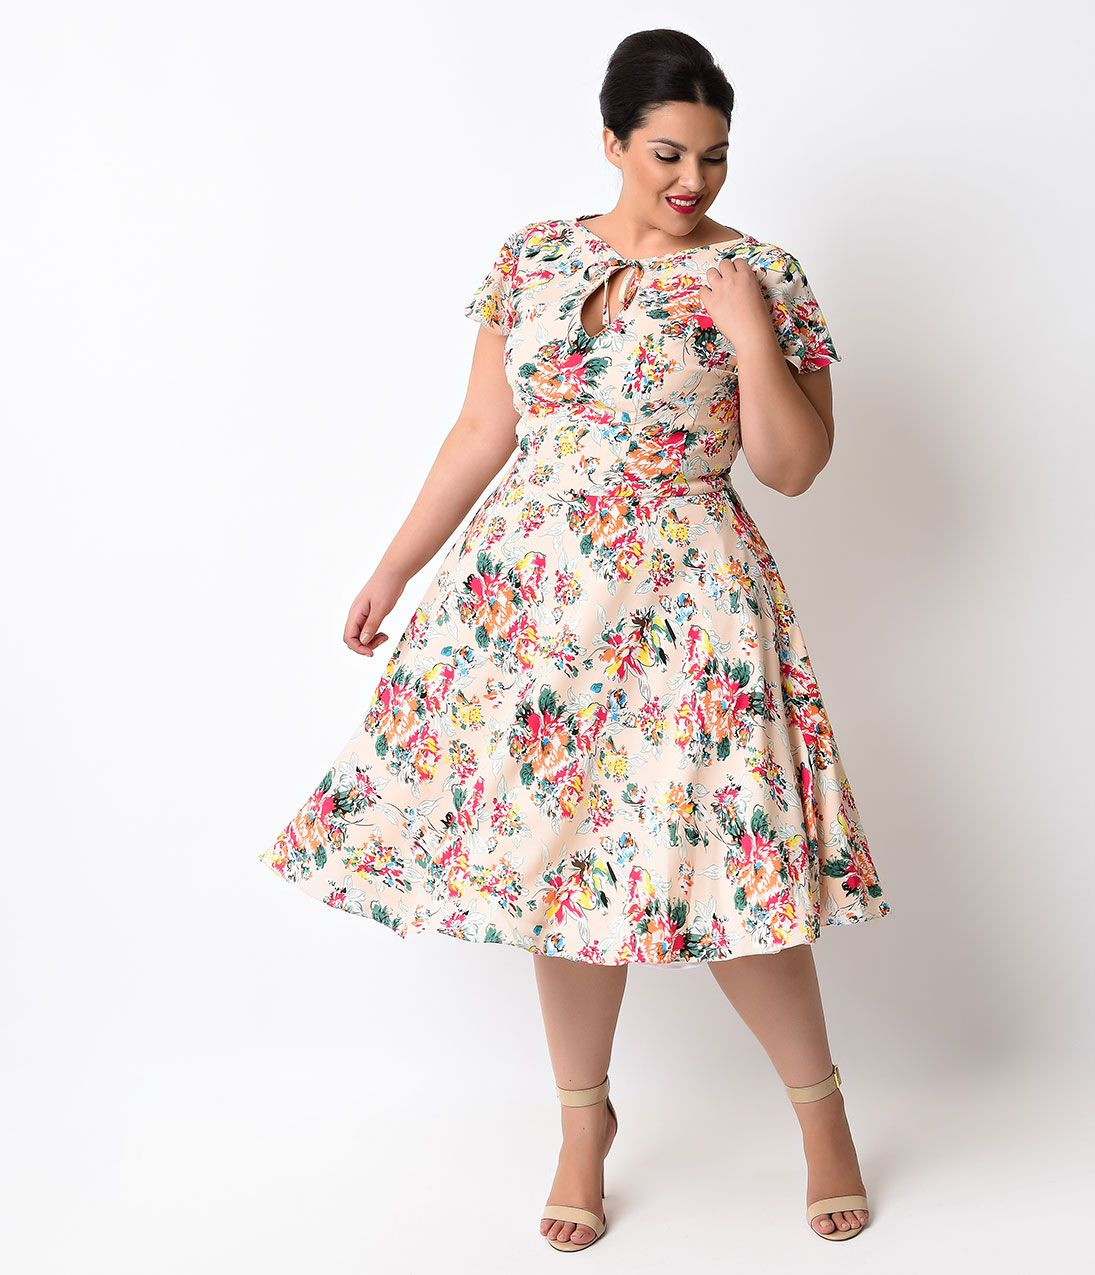 51b8f2422ae Unique Vintage Plus Size 1940s Style Pink Floral Formosa Swing Dress  98.00  AT vintagedancer.com